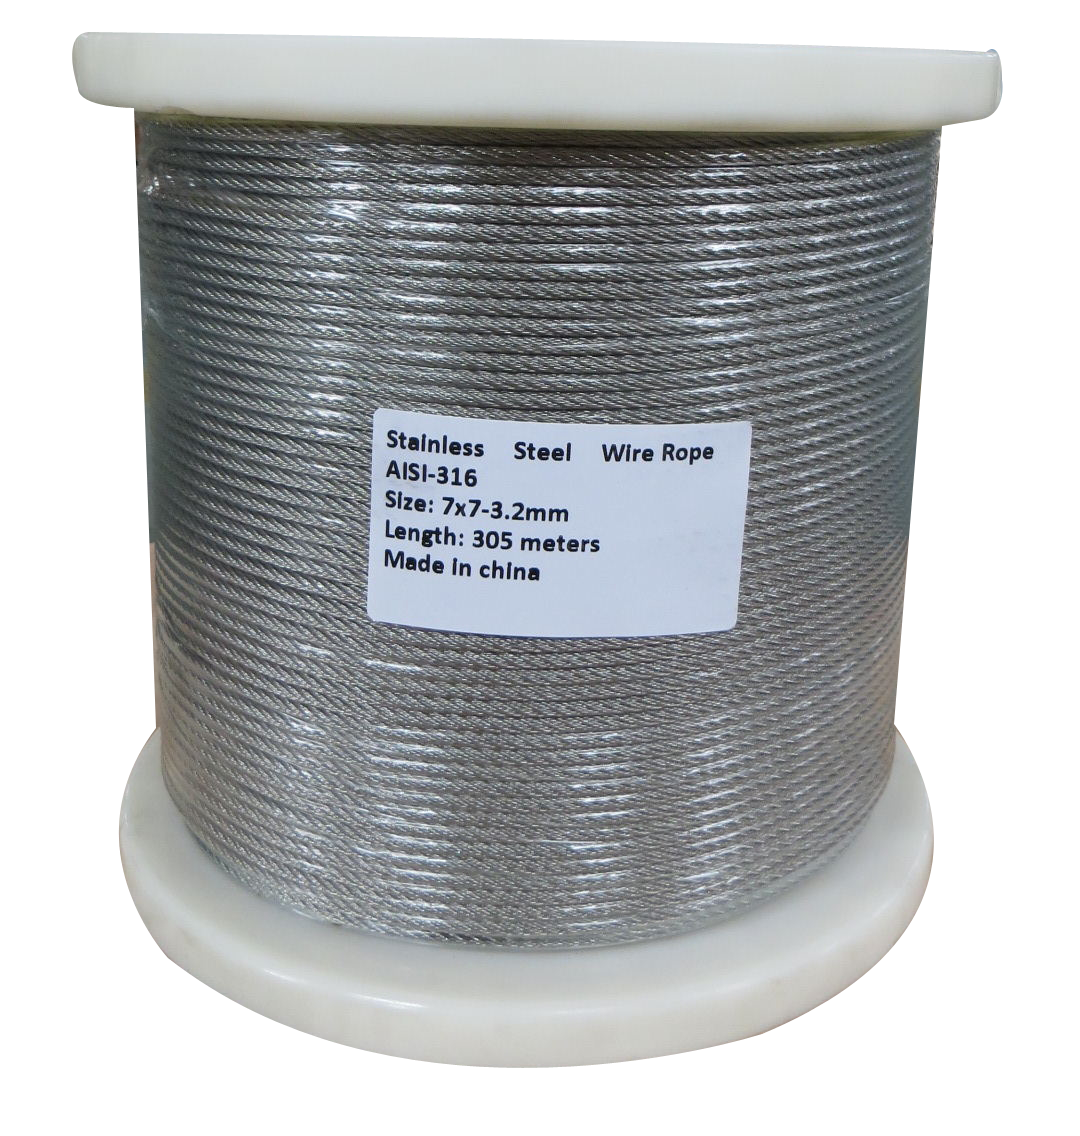 305M G316 STAINLESS STEEL WIRE ROPE 3.2MM BALUSTRADE